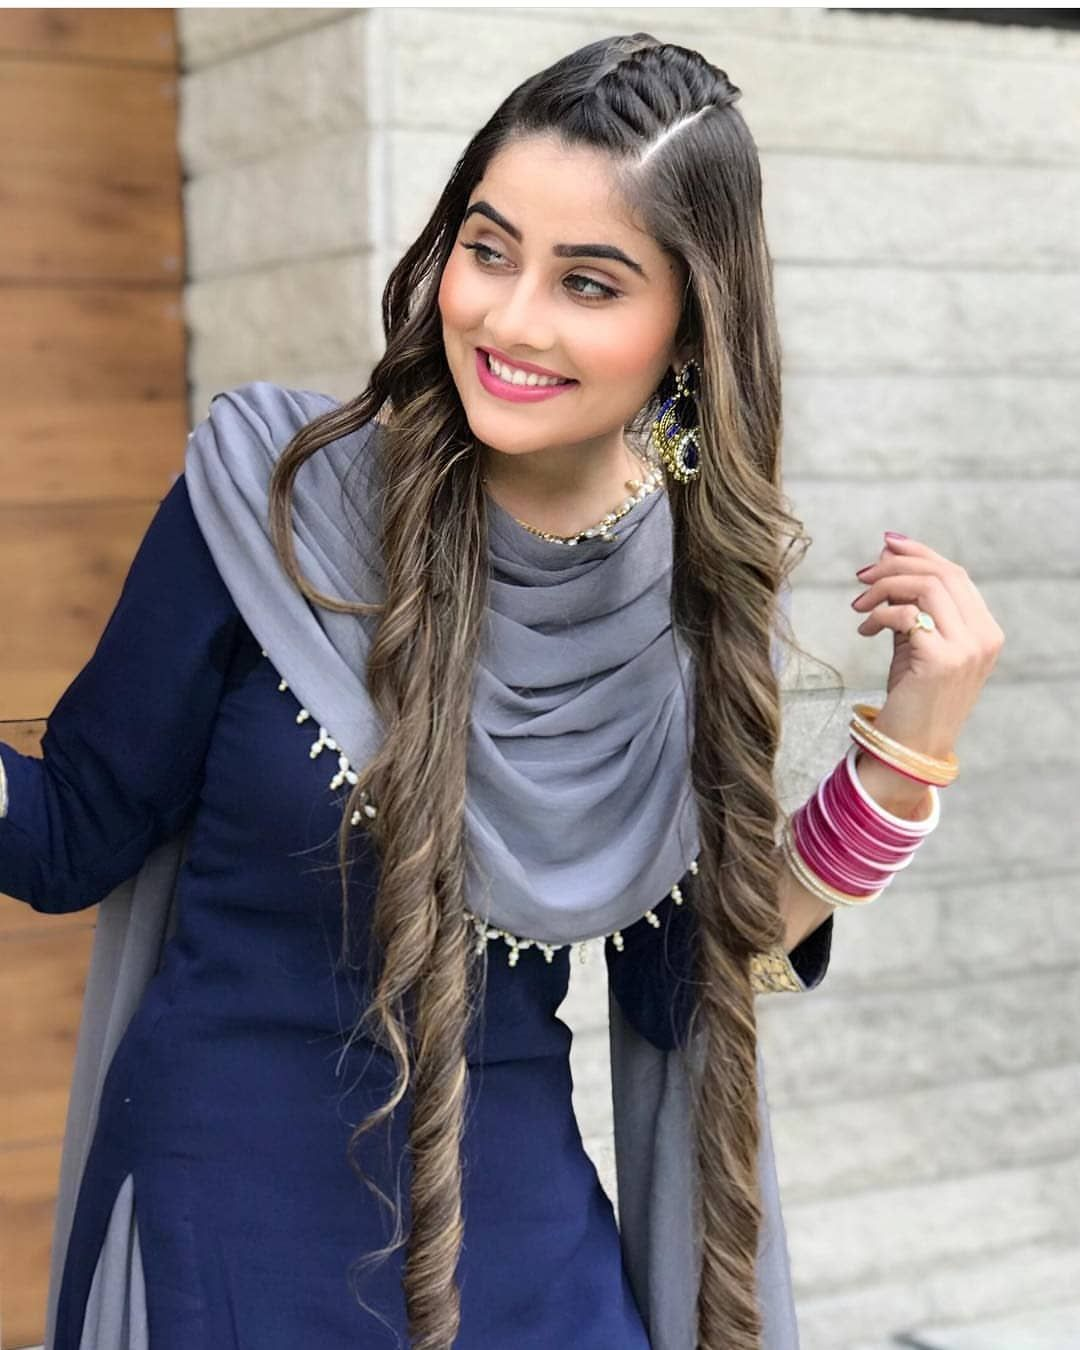 New The 10 Best Hairstyles With Pictures Ghumkanne Wall Prabhgrewalofficial Hair Hairstyle In Hairstyle With Suit Punjabi Models Stylish Girl Images